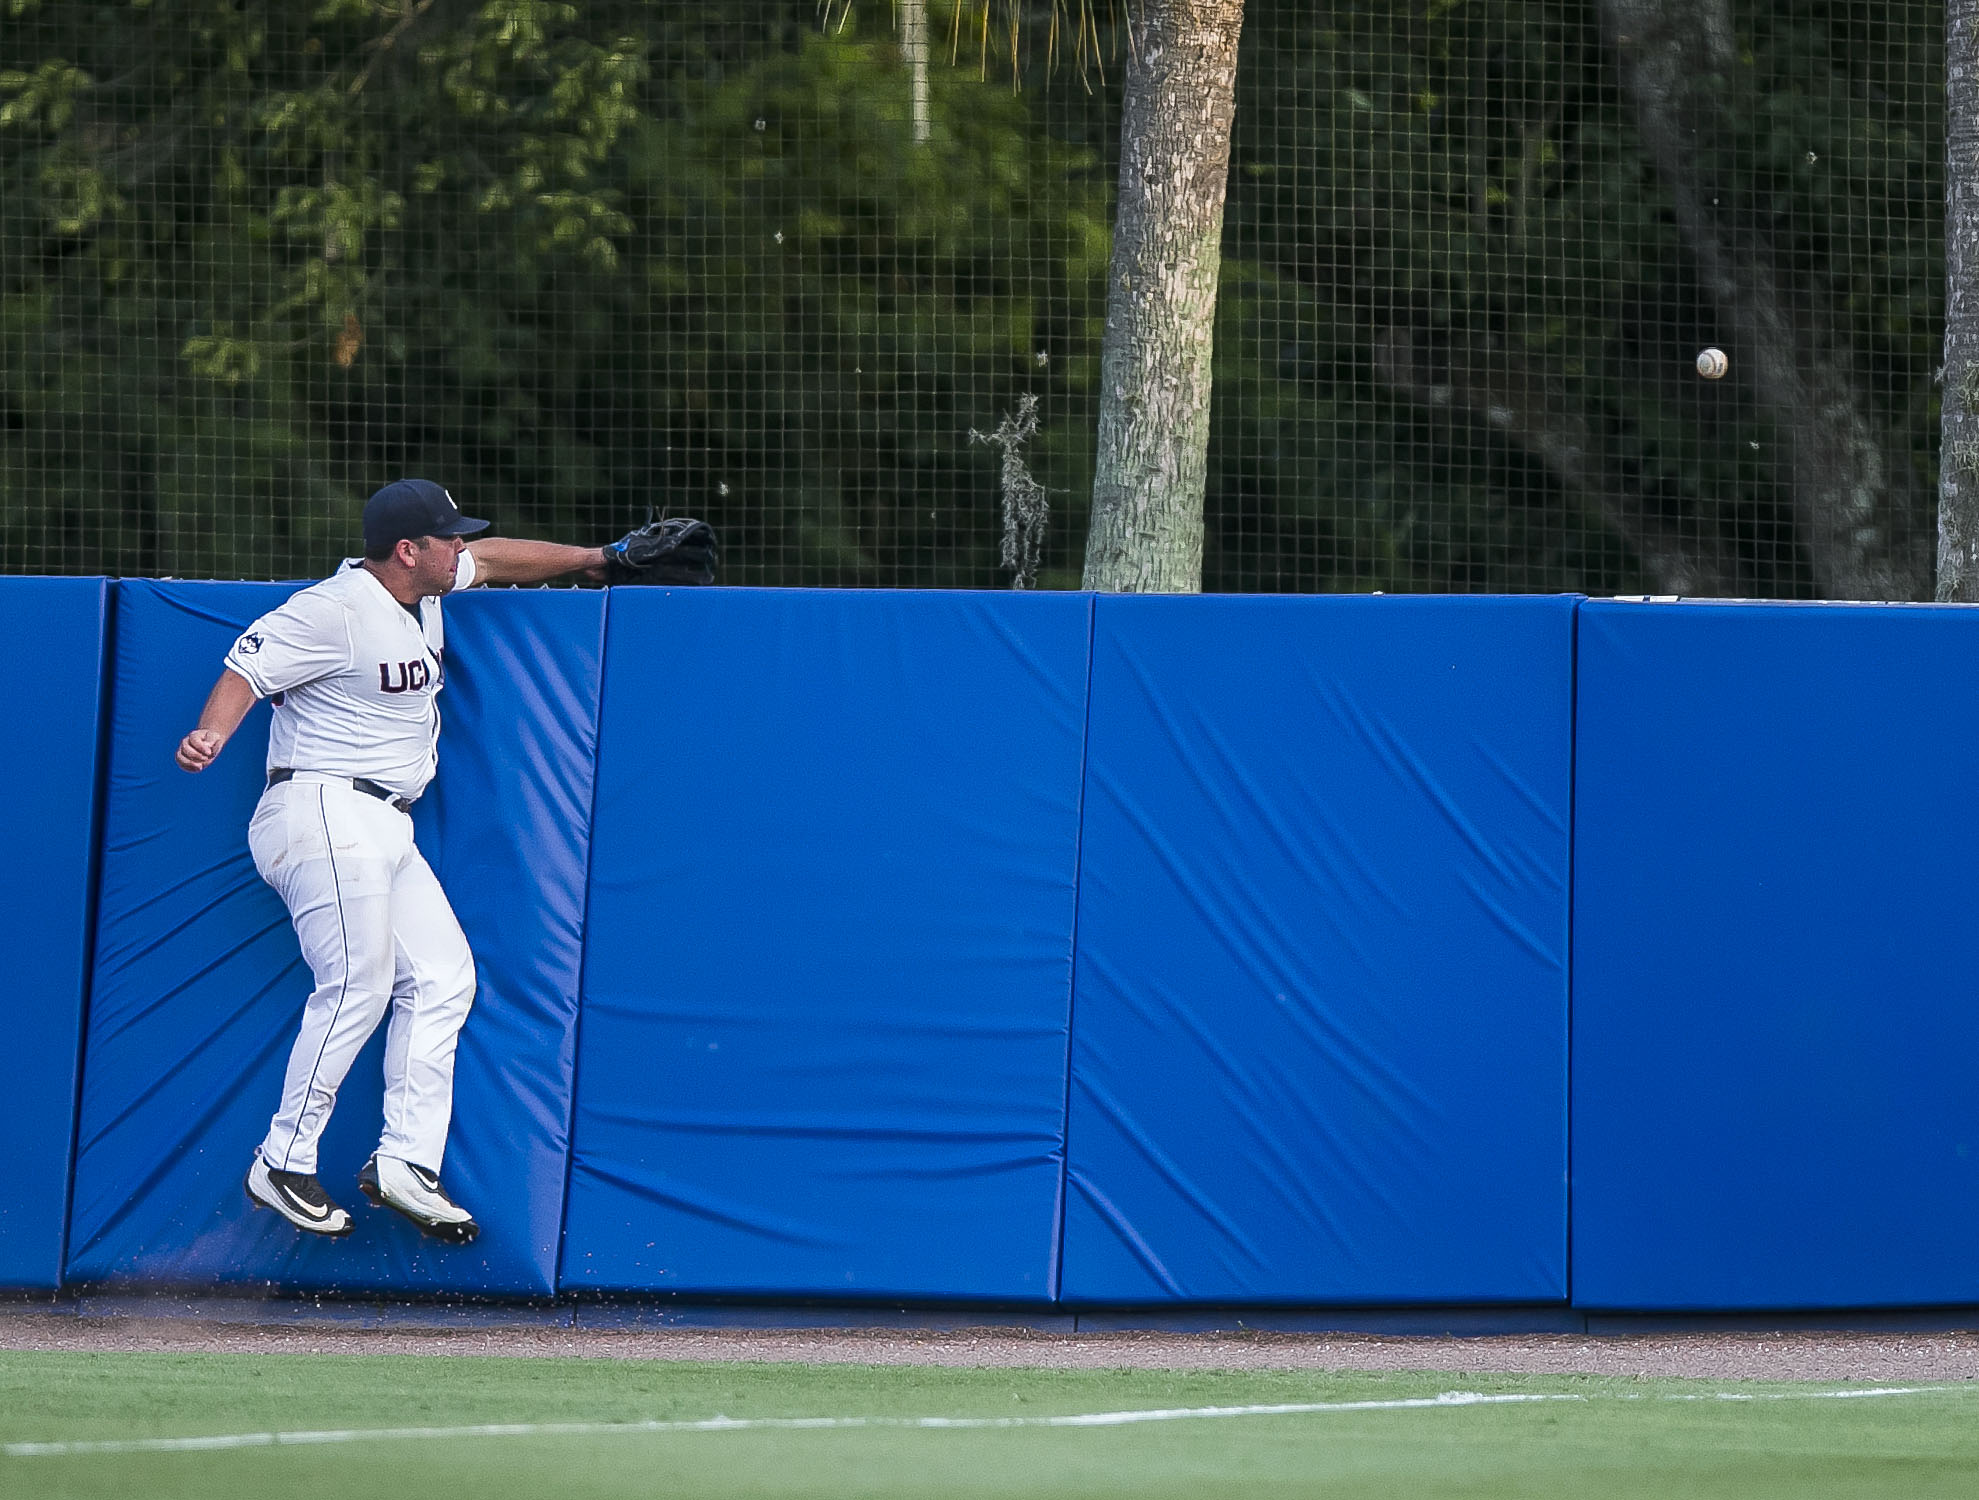 Connecticut's Joe DeRoche-Duffin cannot snag Florida's Danny Reyes's home run during an NCAA college regional baseball game Saturday, June 4, 2016, in Gainesville, Fla. (Cyndi Chambers/The Gainesville Sun via AP)